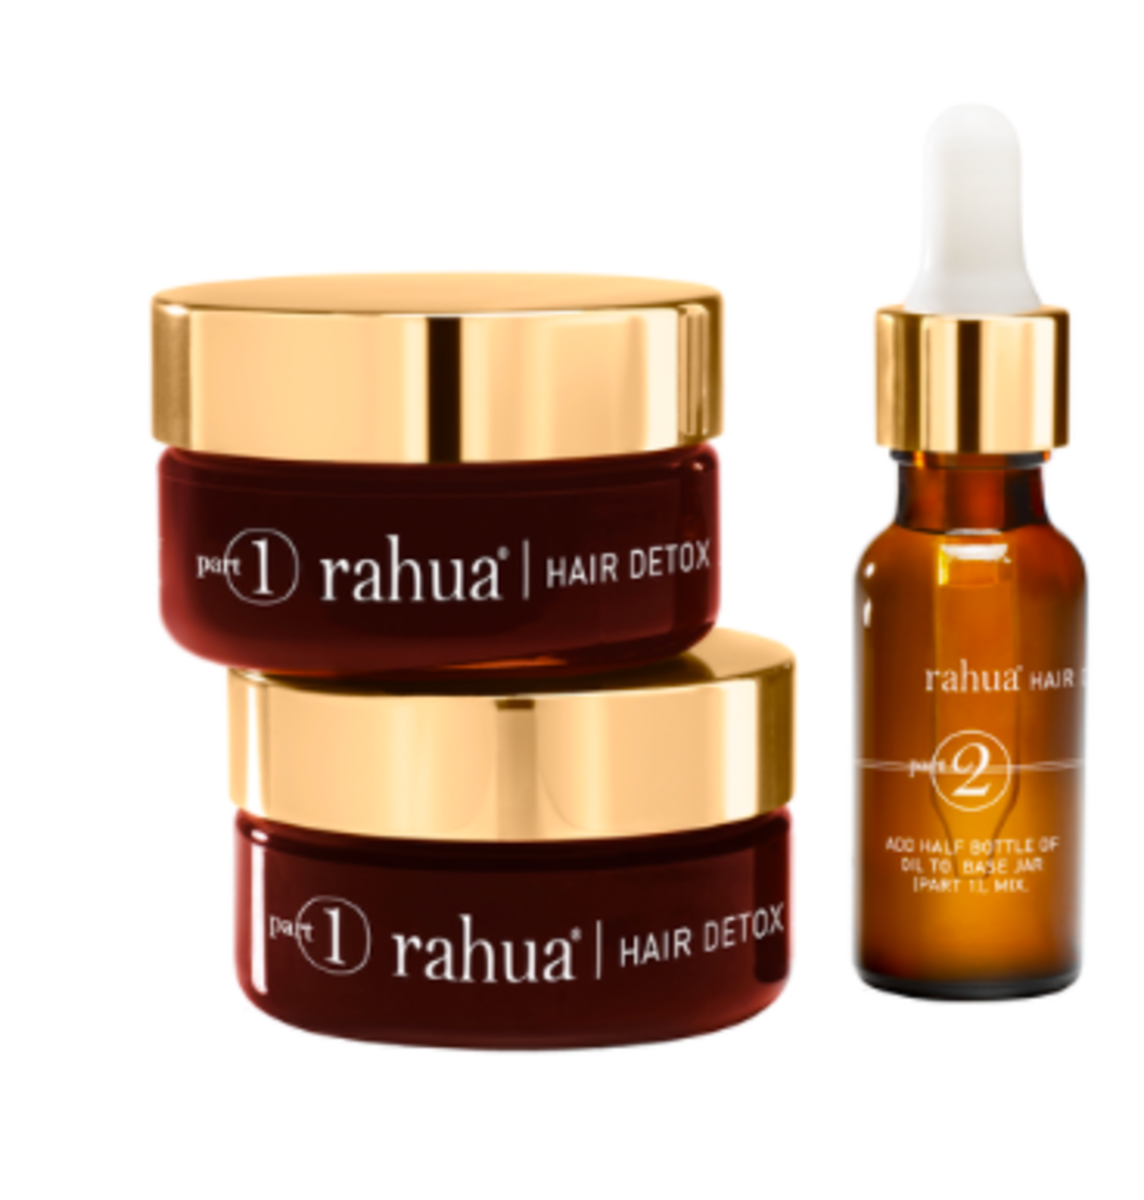 Rahua Hair Detox & Renewal Treatment